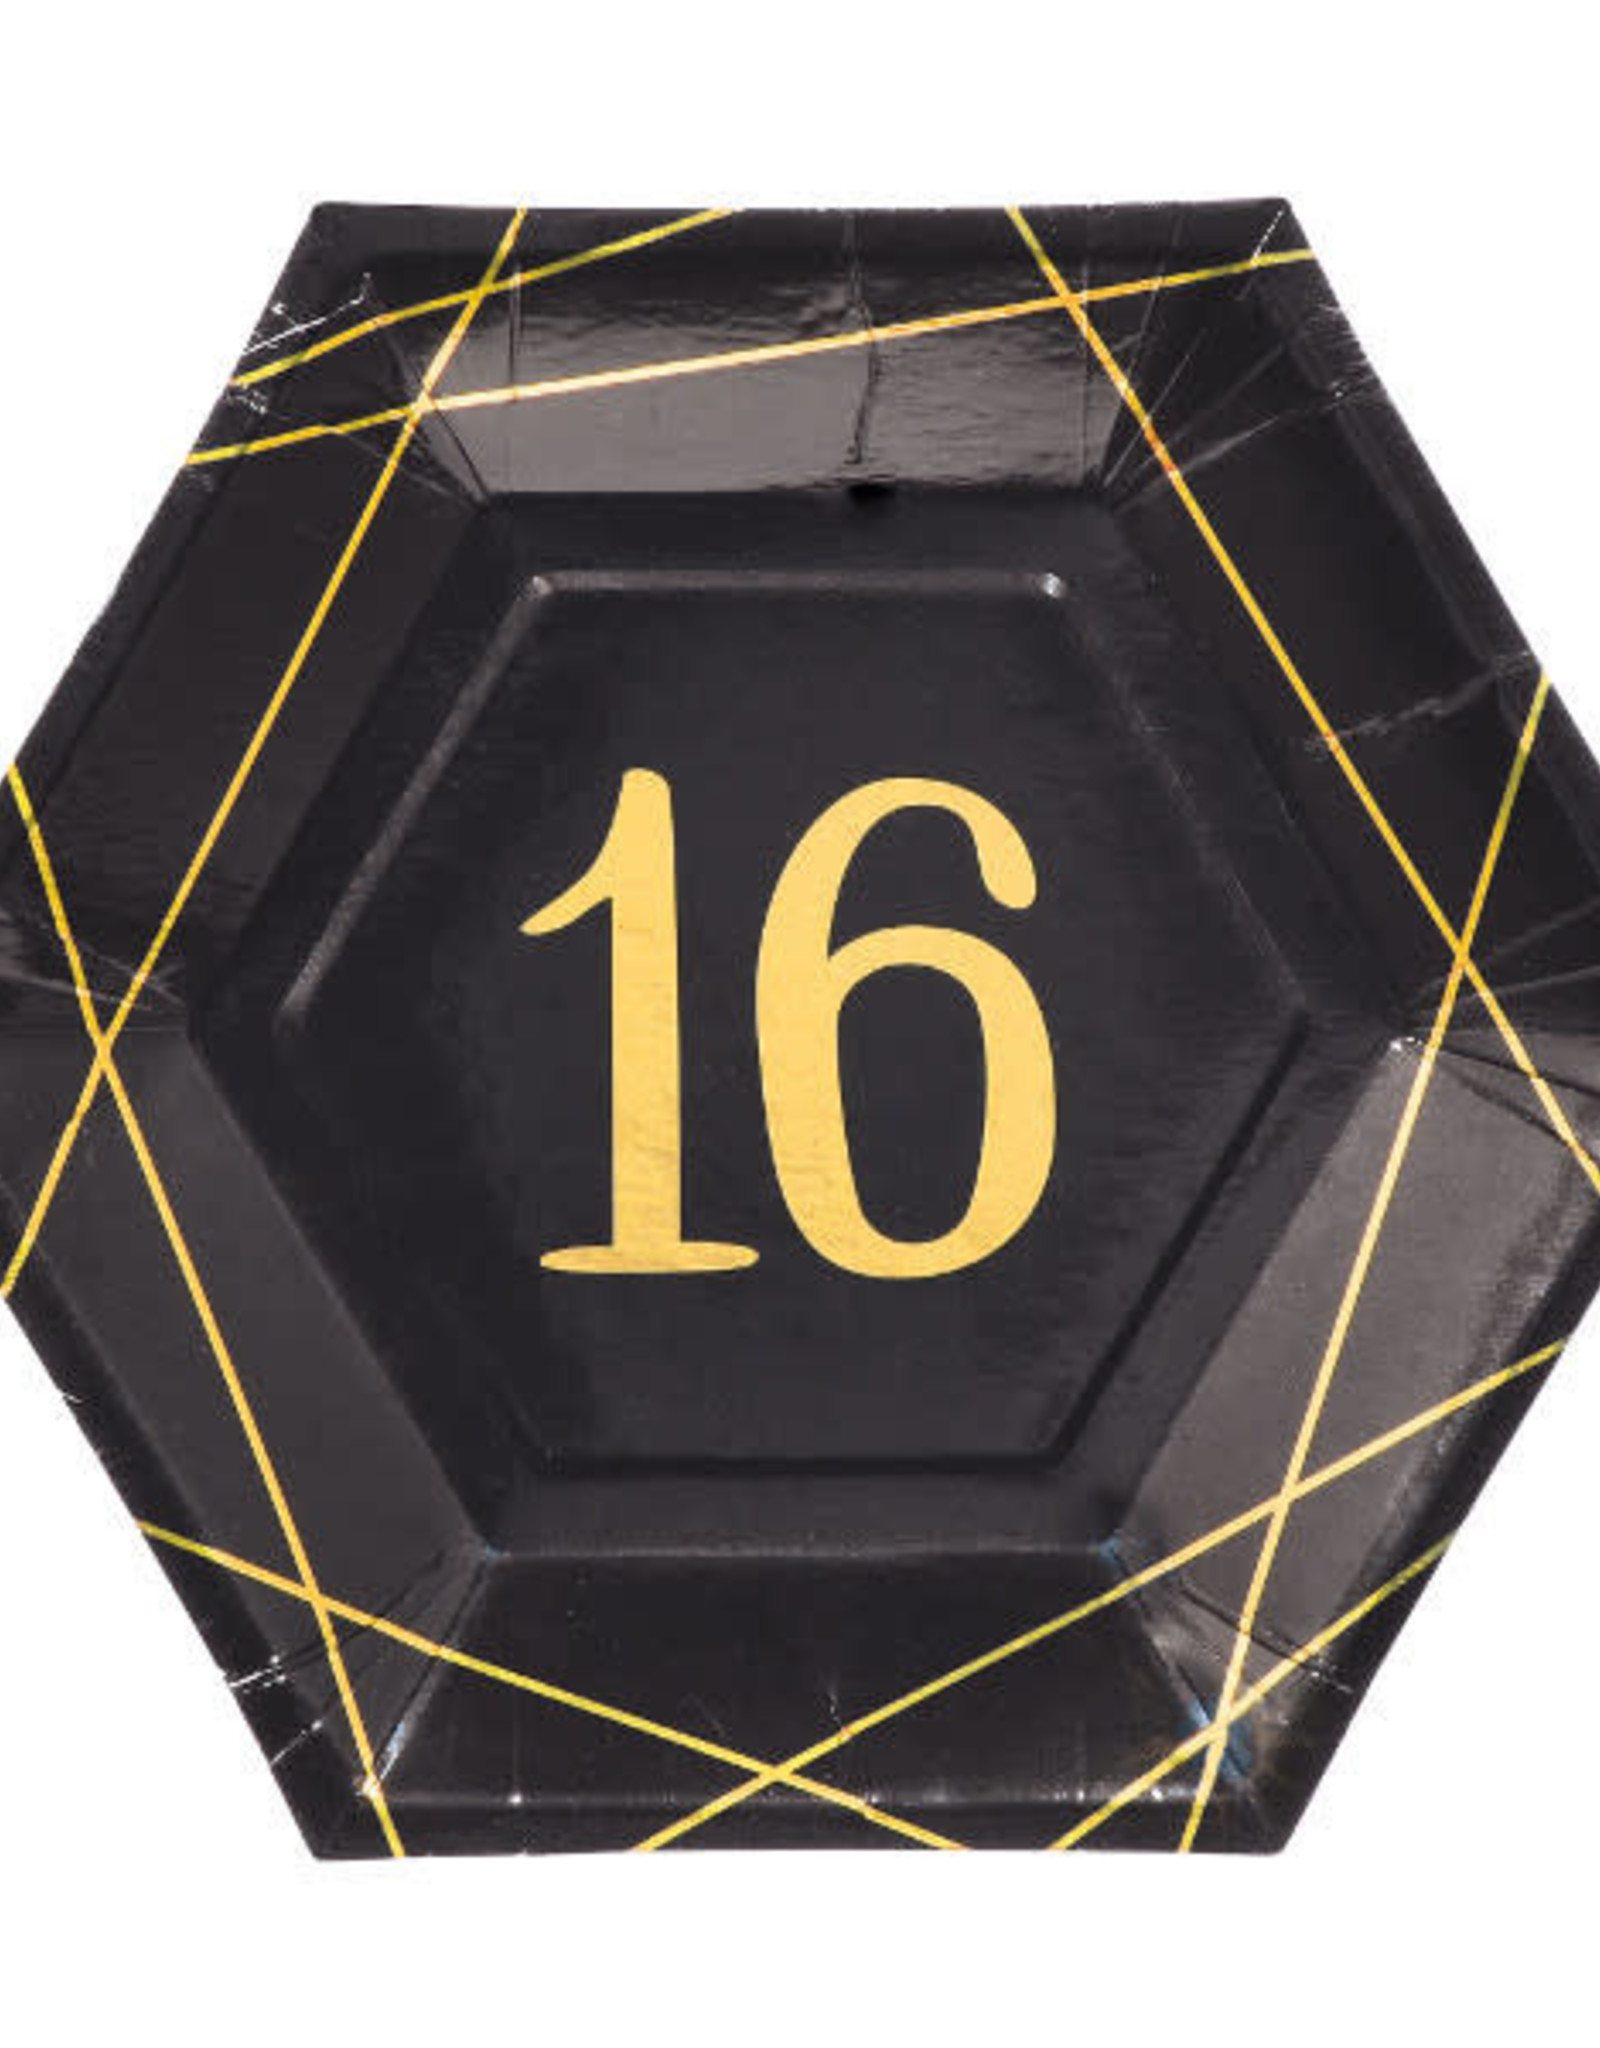 "16th Birthday Black & Gold Hexagon  7"" Dessert Plates"